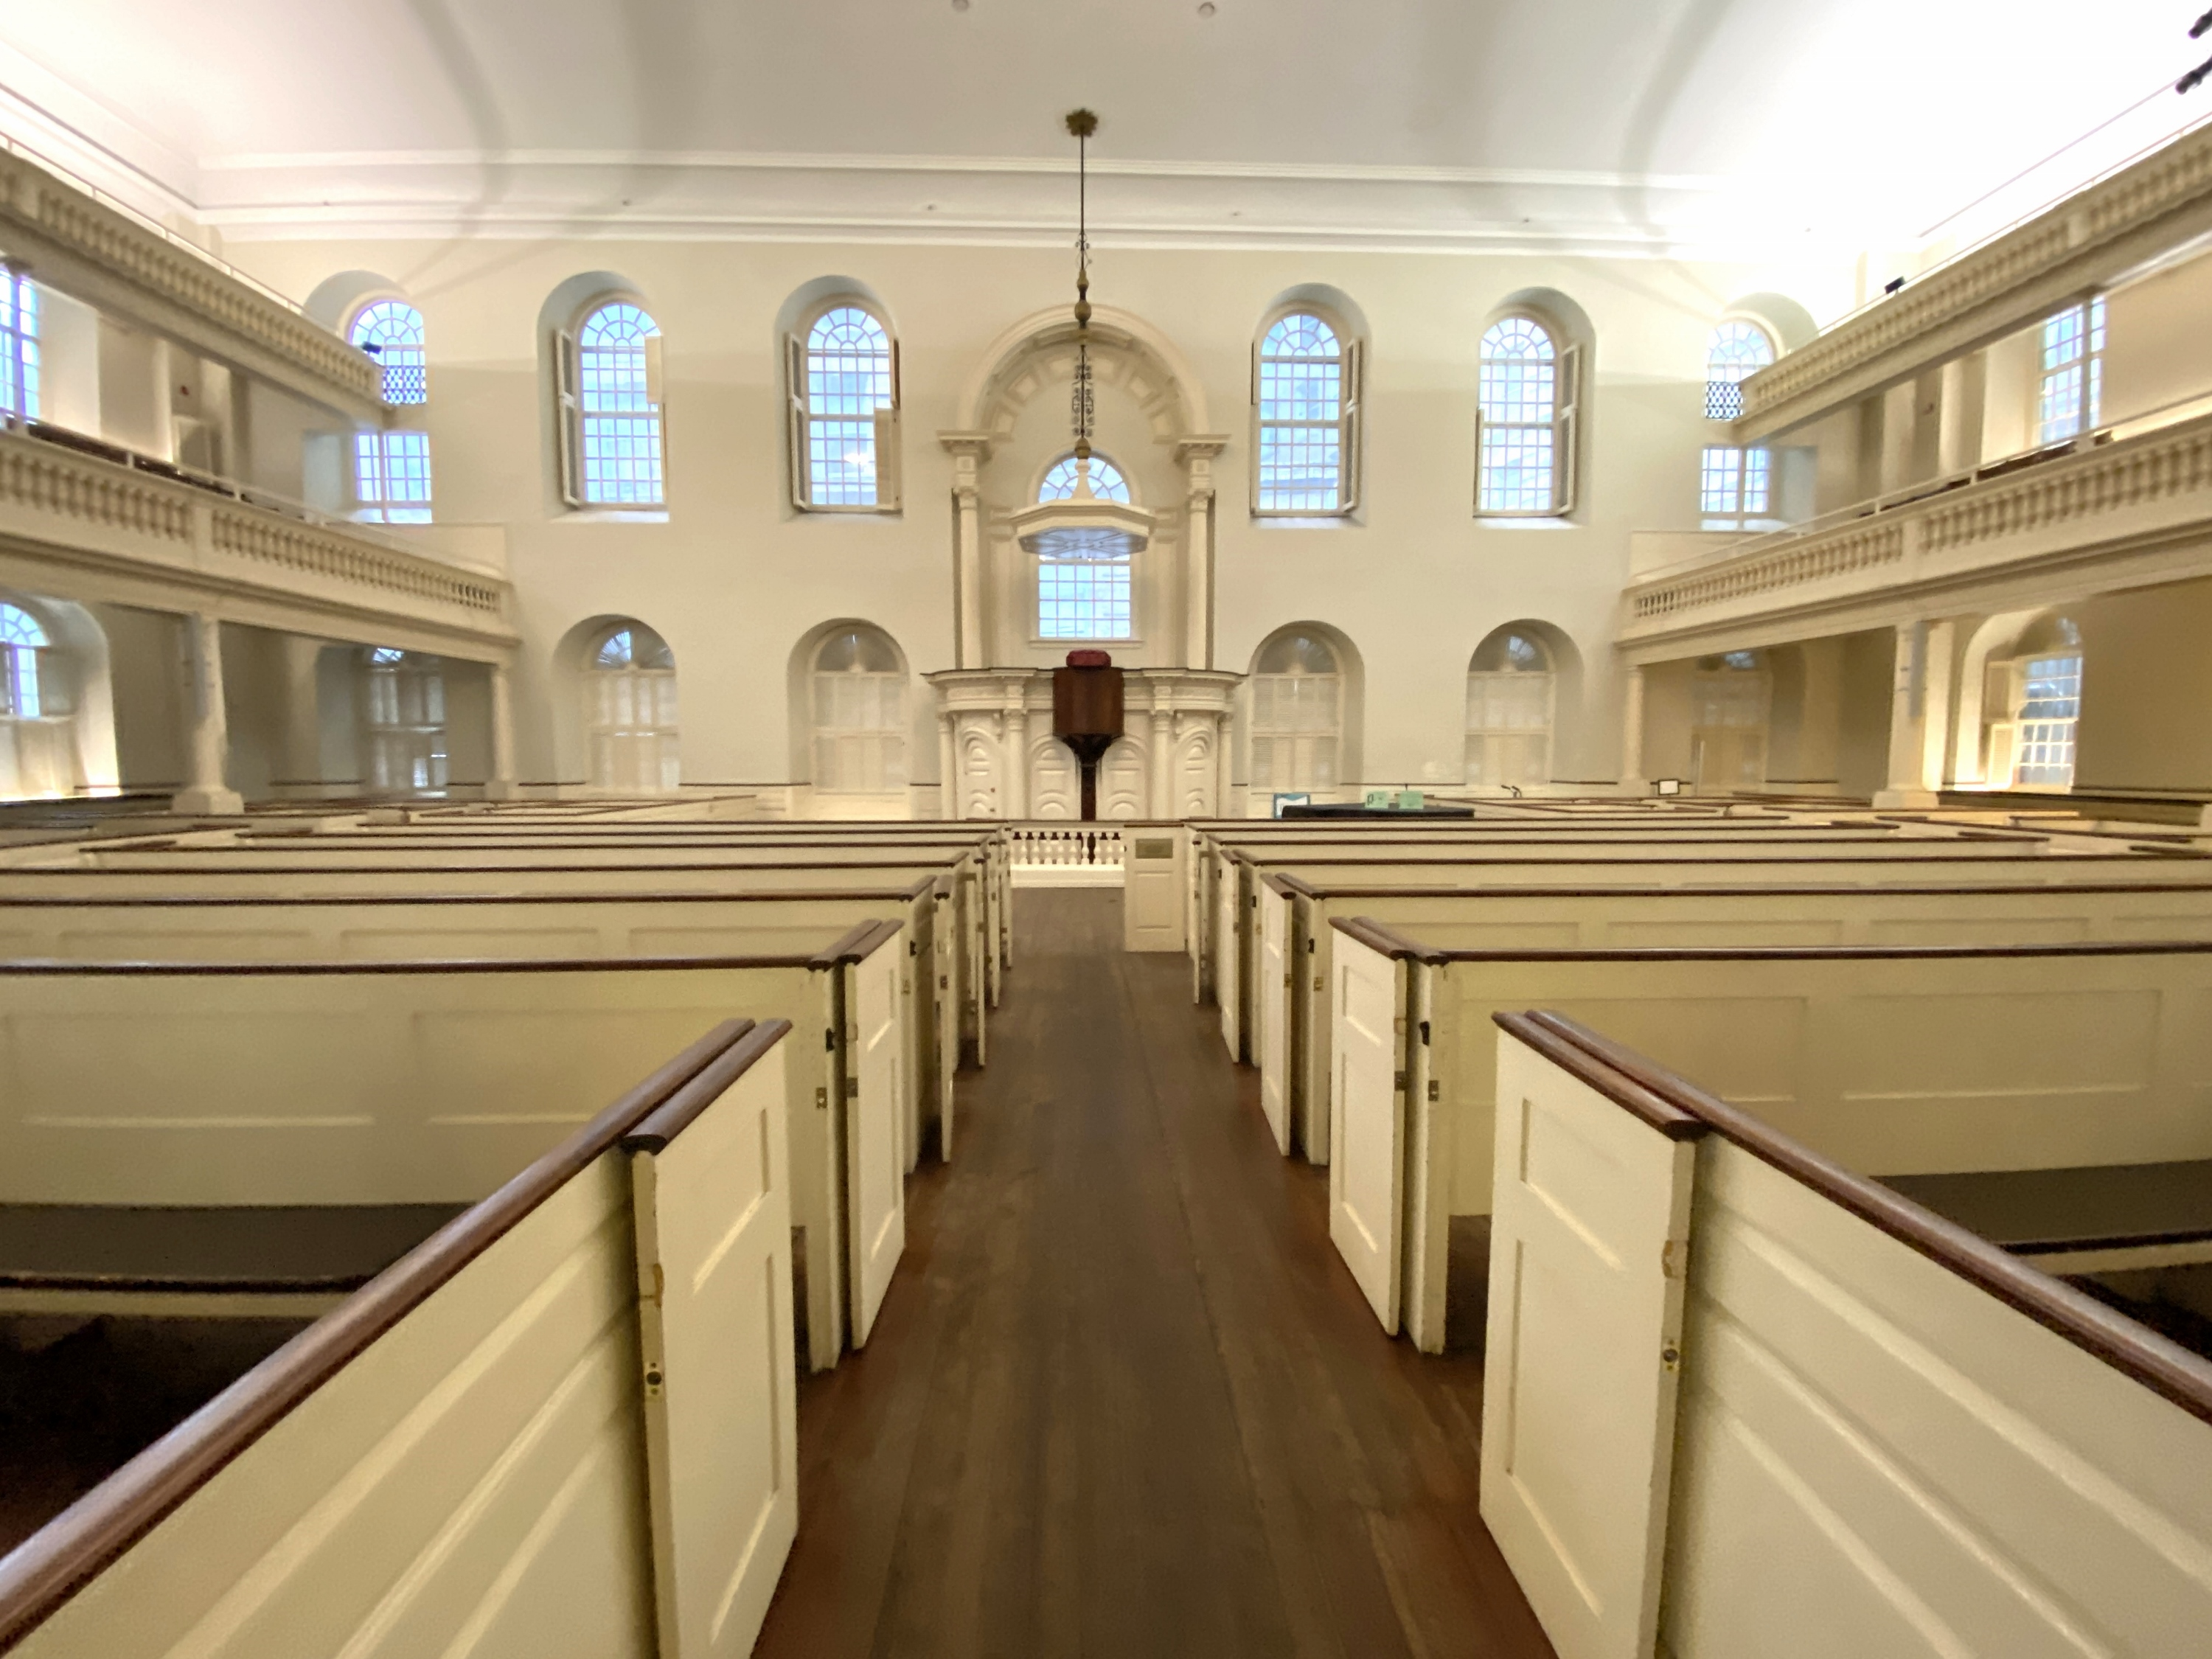 Old South Meeting House, Boston, MA. Everyone was at home because of the tropical storm.